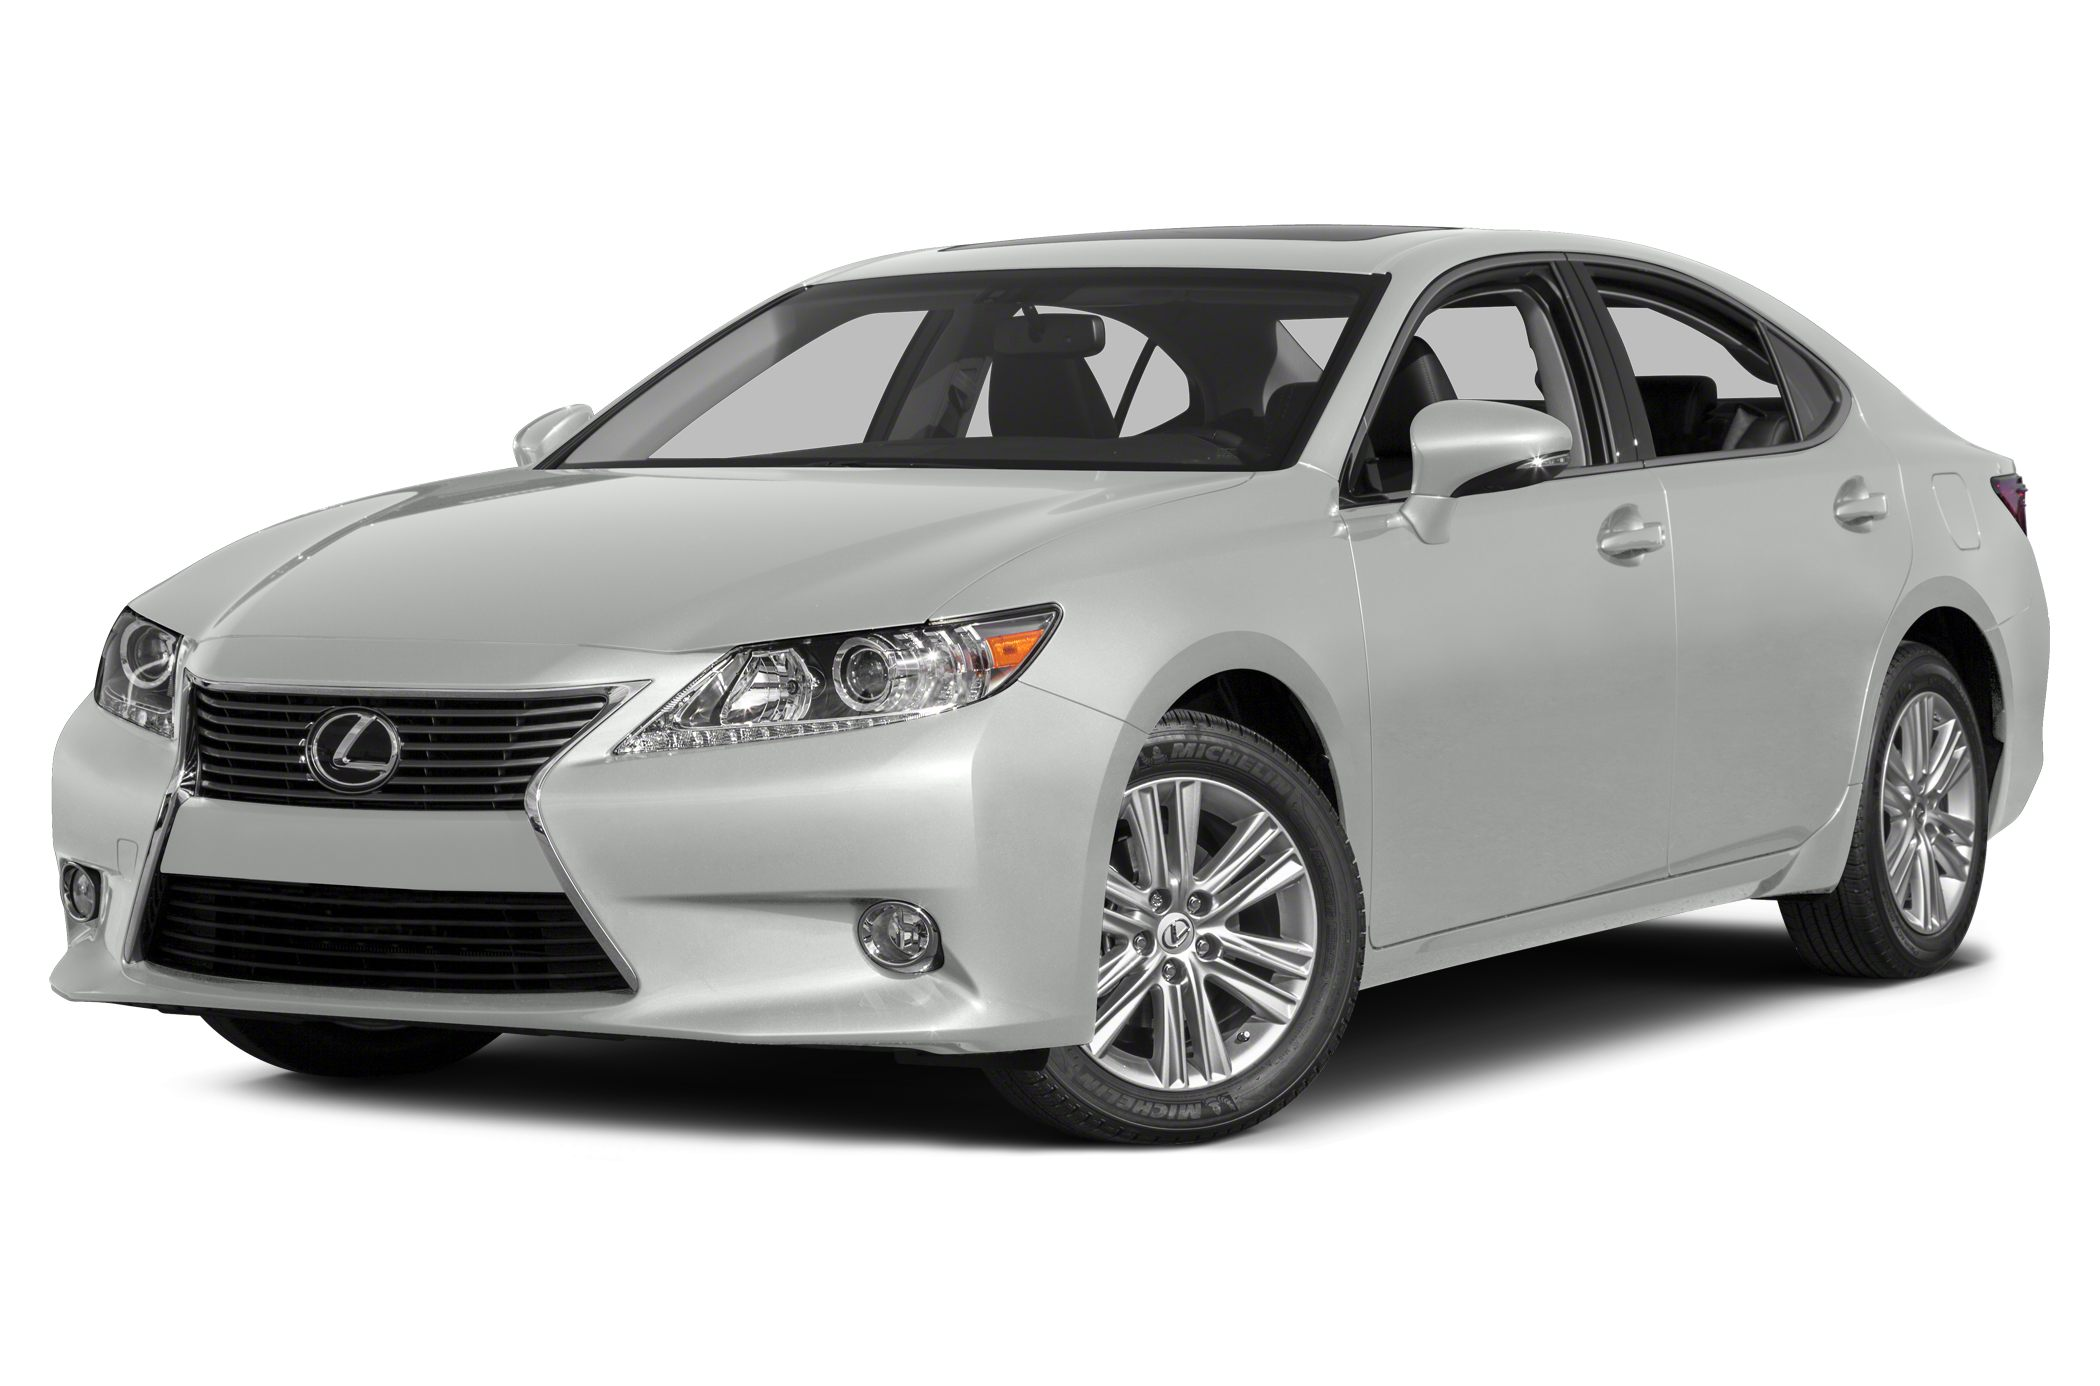 2013 Lexus ES 350 Base Sedan for sale in Santa Rosa for $35,975 with 10,215 miles